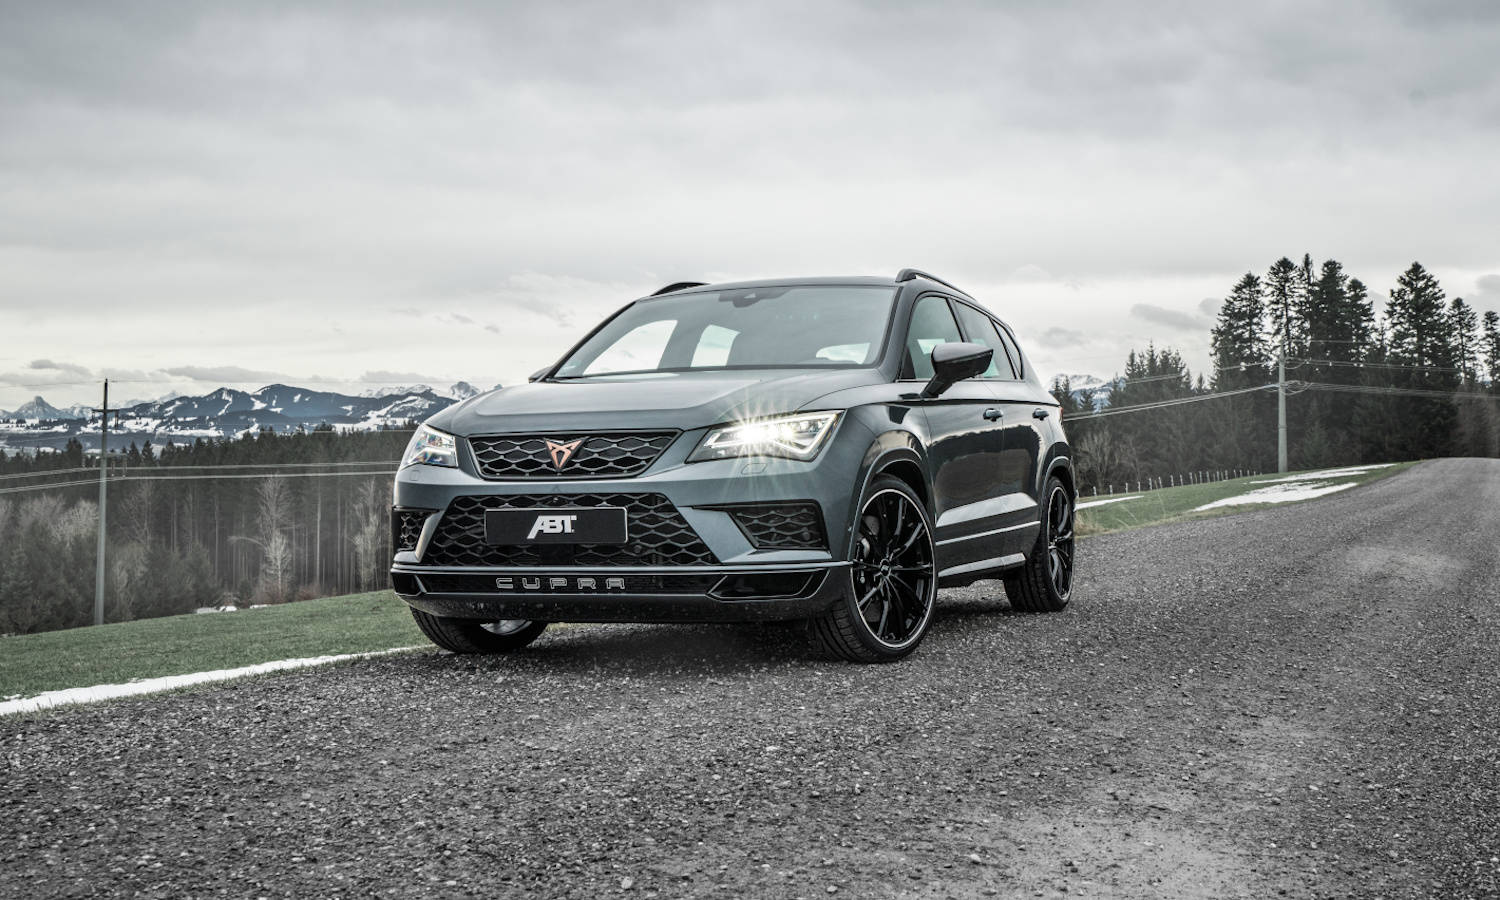 Cupra-Ateca-Limited-Edition-by-ABT-1